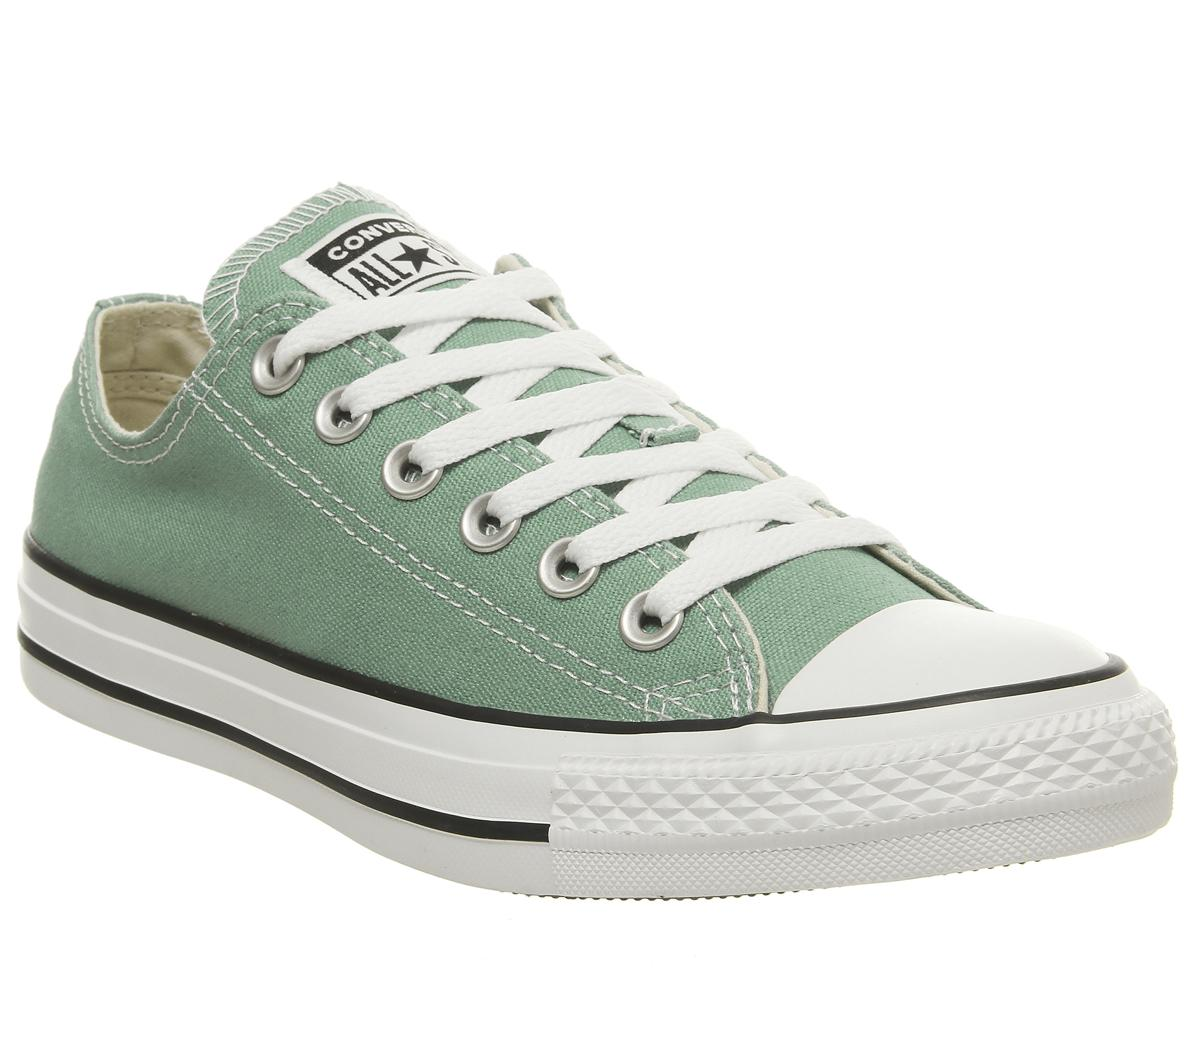 Low Trainers Mineral Teal - Hers trainers